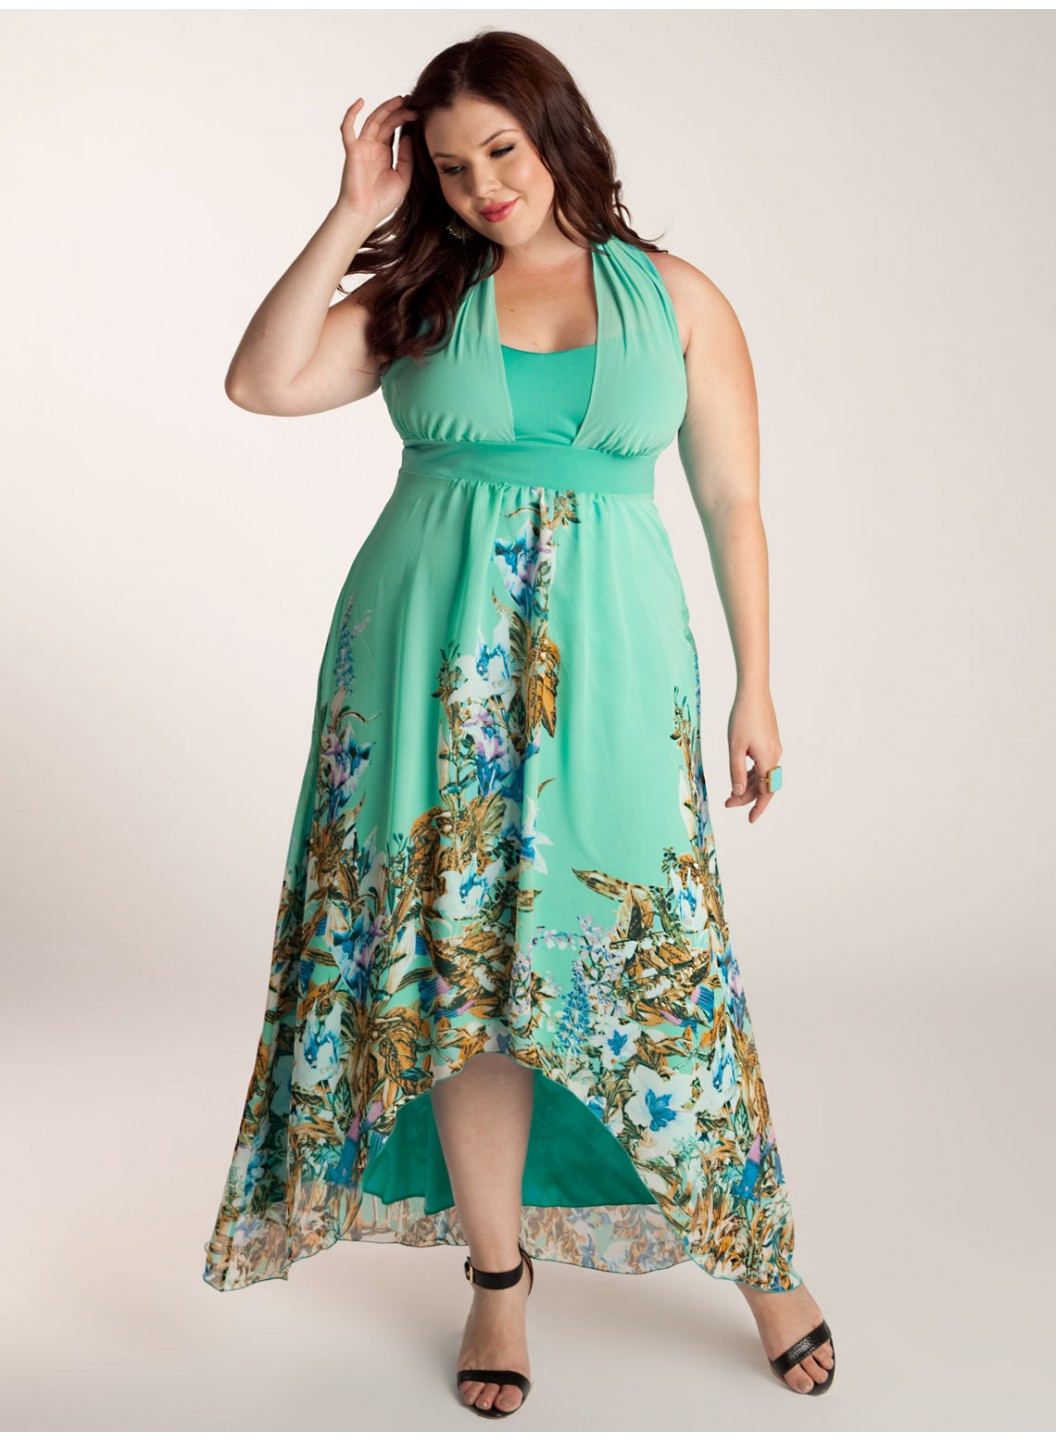 Plus Size Maxi Dresses - Dressed Up Girl